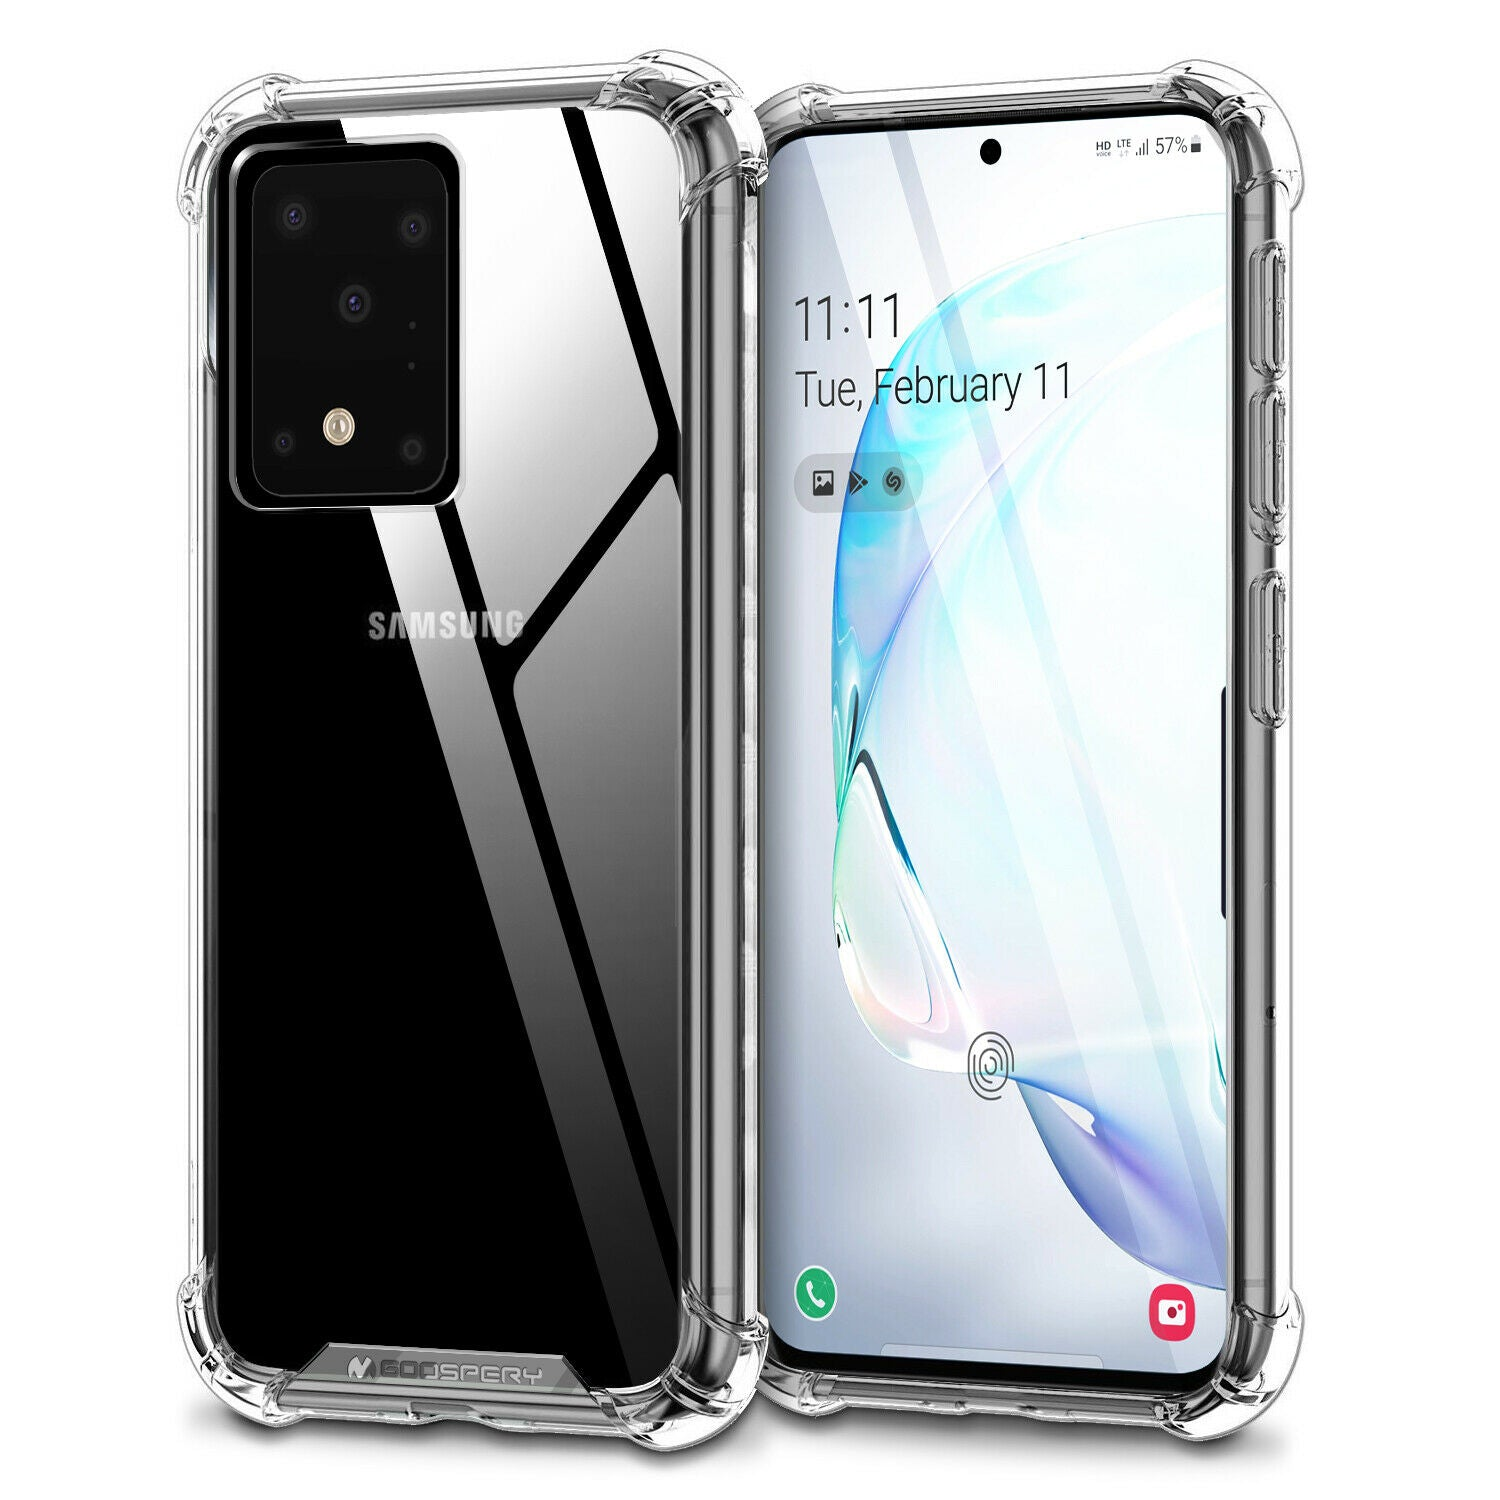 GOOSPERY Super Protect Clear Case for Samsung Galaxy S20 Plus / S20